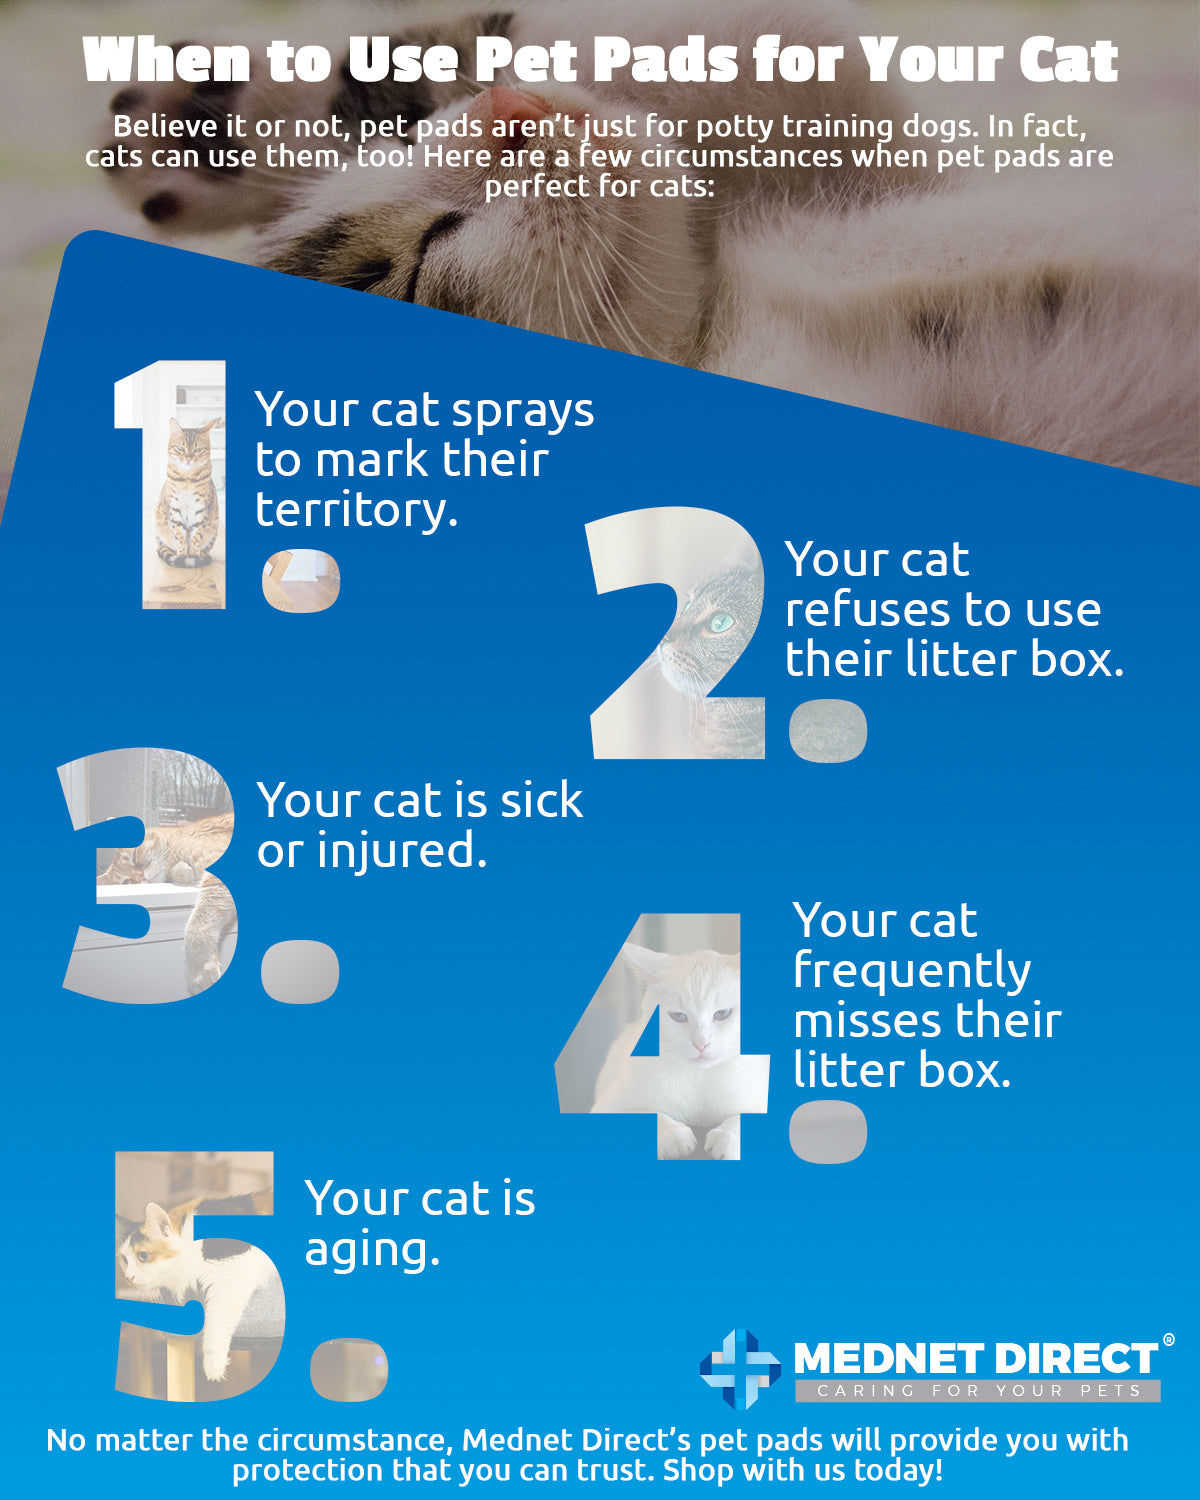 Can You Train Your Cat to Use Pet Pads? | Mednet Direct